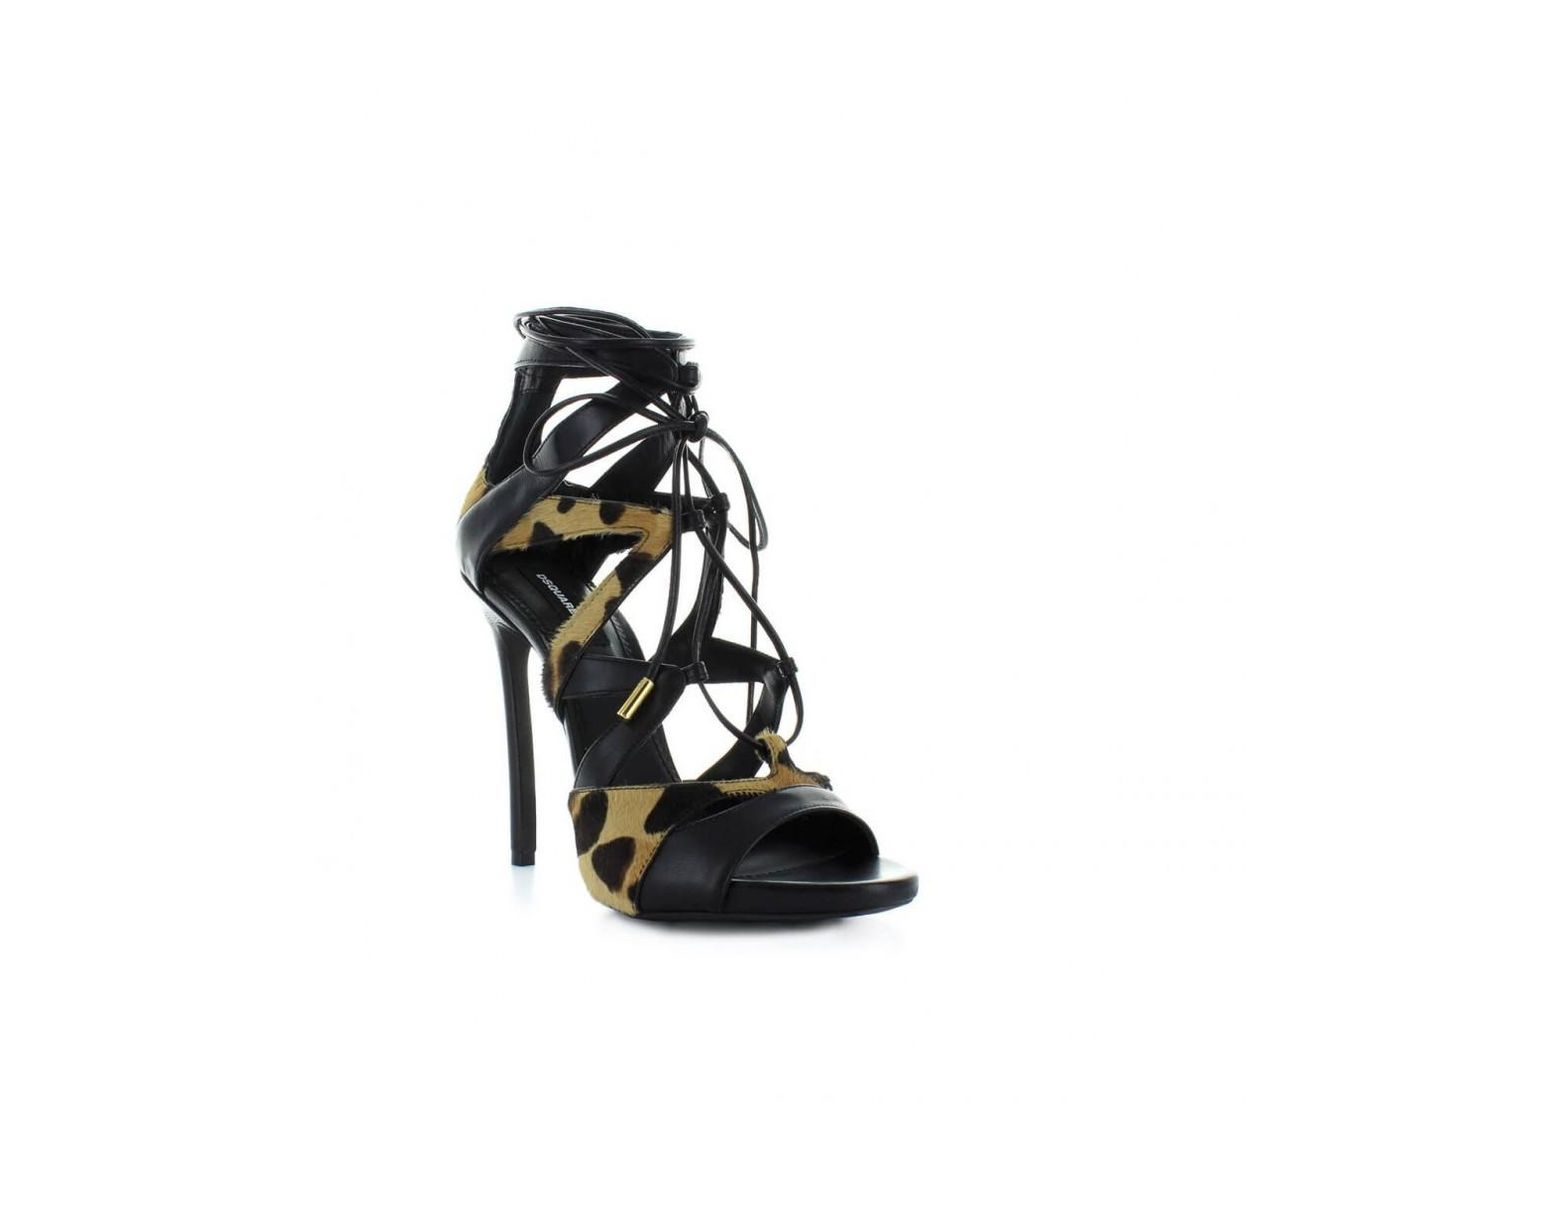 Dsquared2 The Giant Sandals Black High Heeled Sandals for